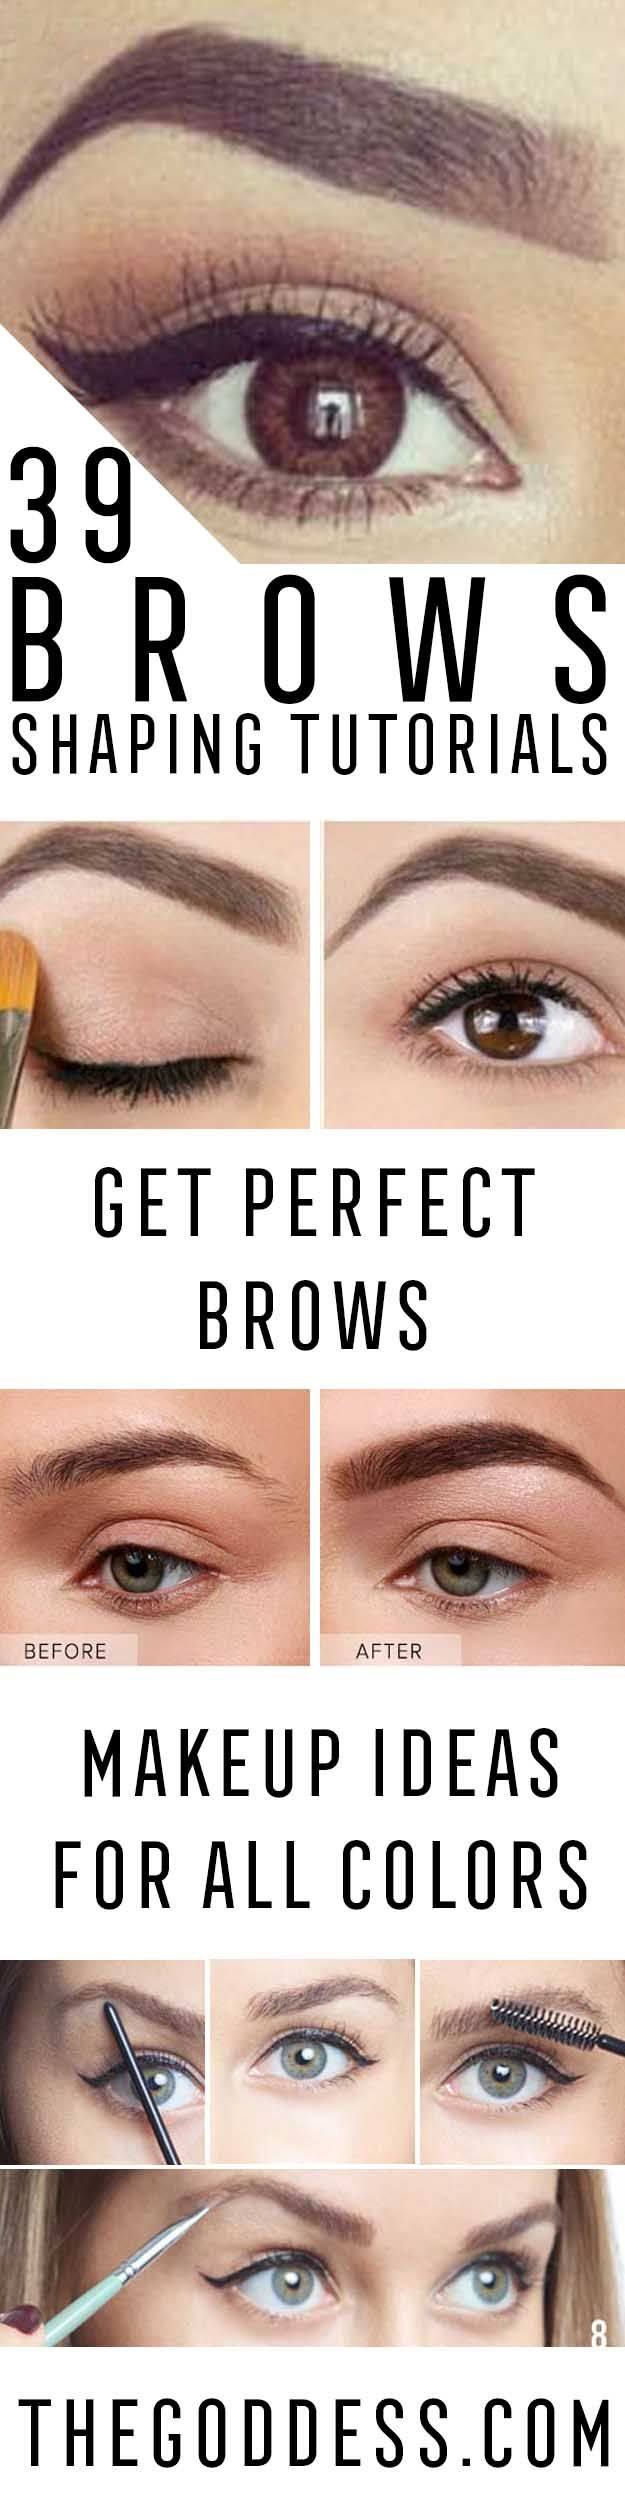 Brow Shaping Tutorials - Awesome Makeup Tips for How To Get Beautiful Arches, Amazing Eye Looks and Perfect Eyebrows - Make Up Products and Beauty Tricks for All Different Hair Colors along with Guides for Different Eyeshadows  - thegoddess.com/brow-shaping-tutorials